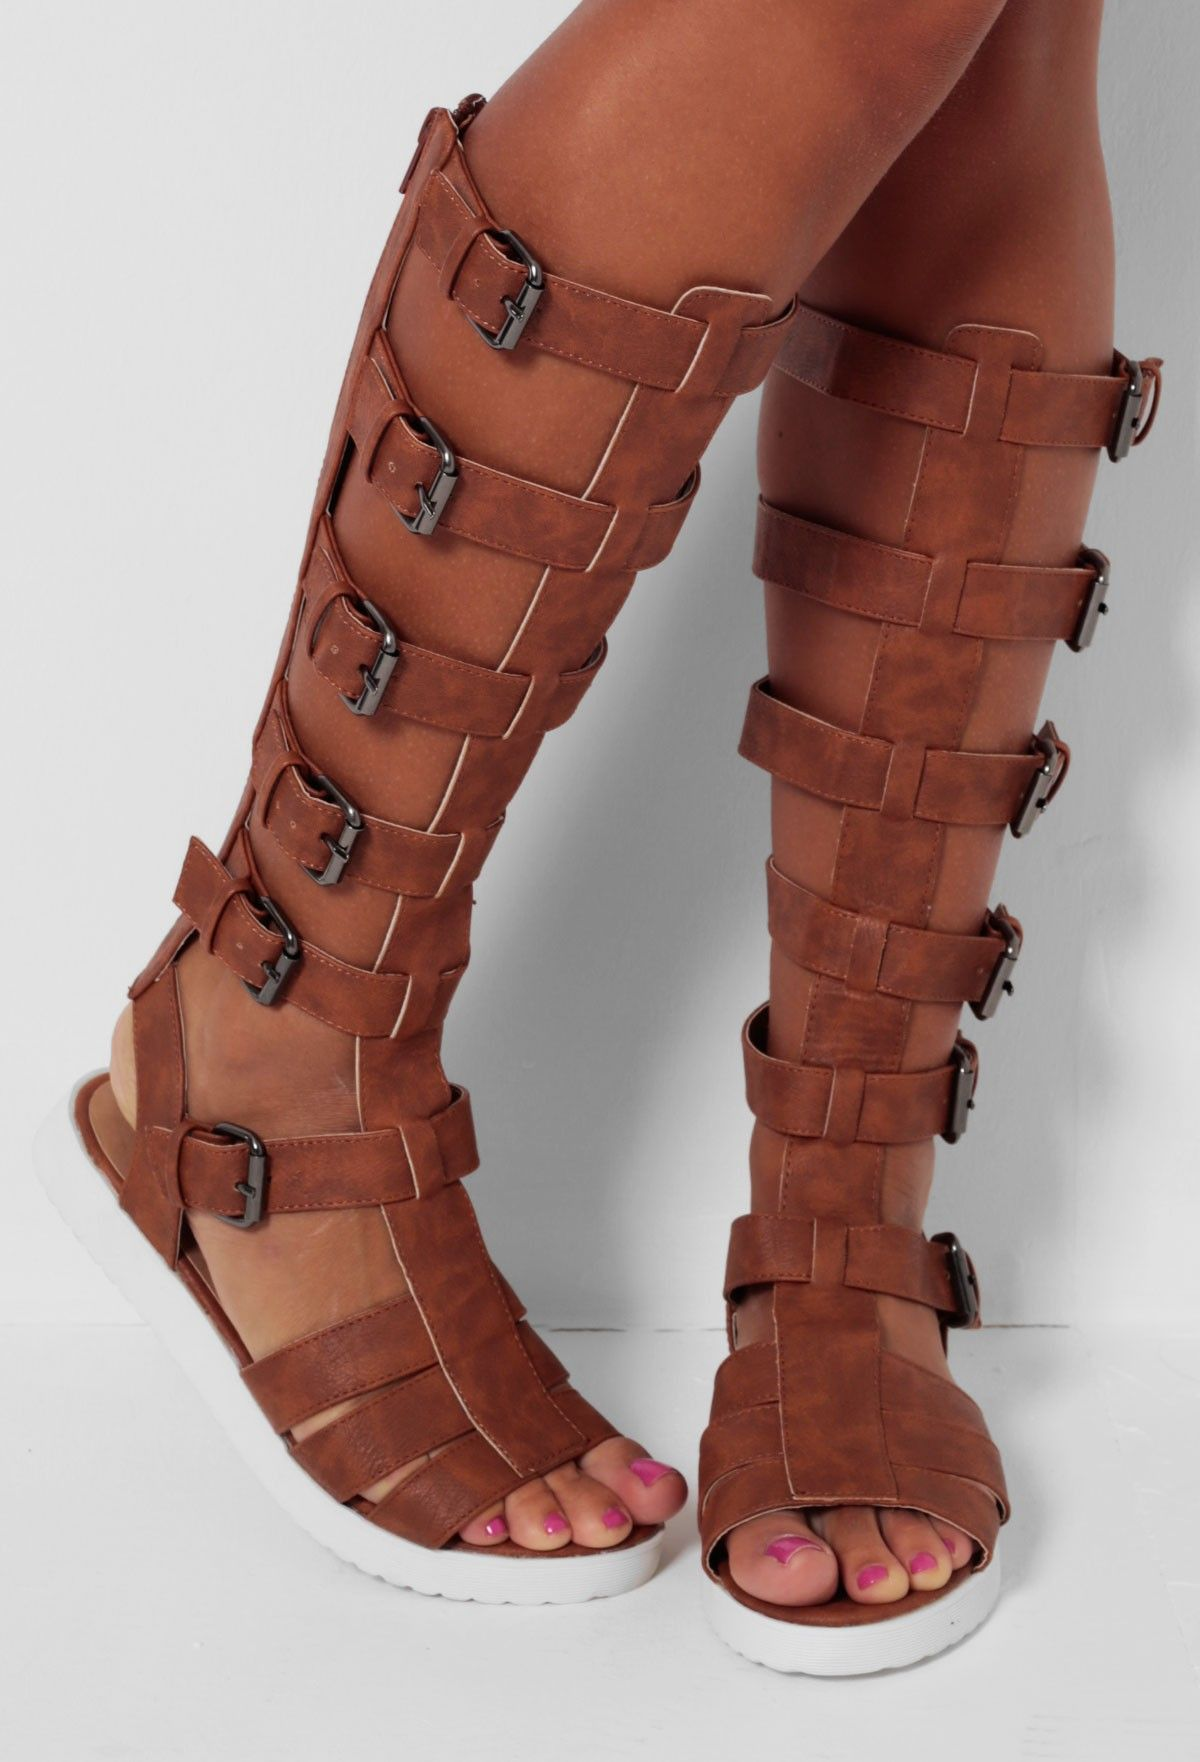 8be822b97f19 These funky gladiator sandals are perfect for an on trend summer chic and  look fab with